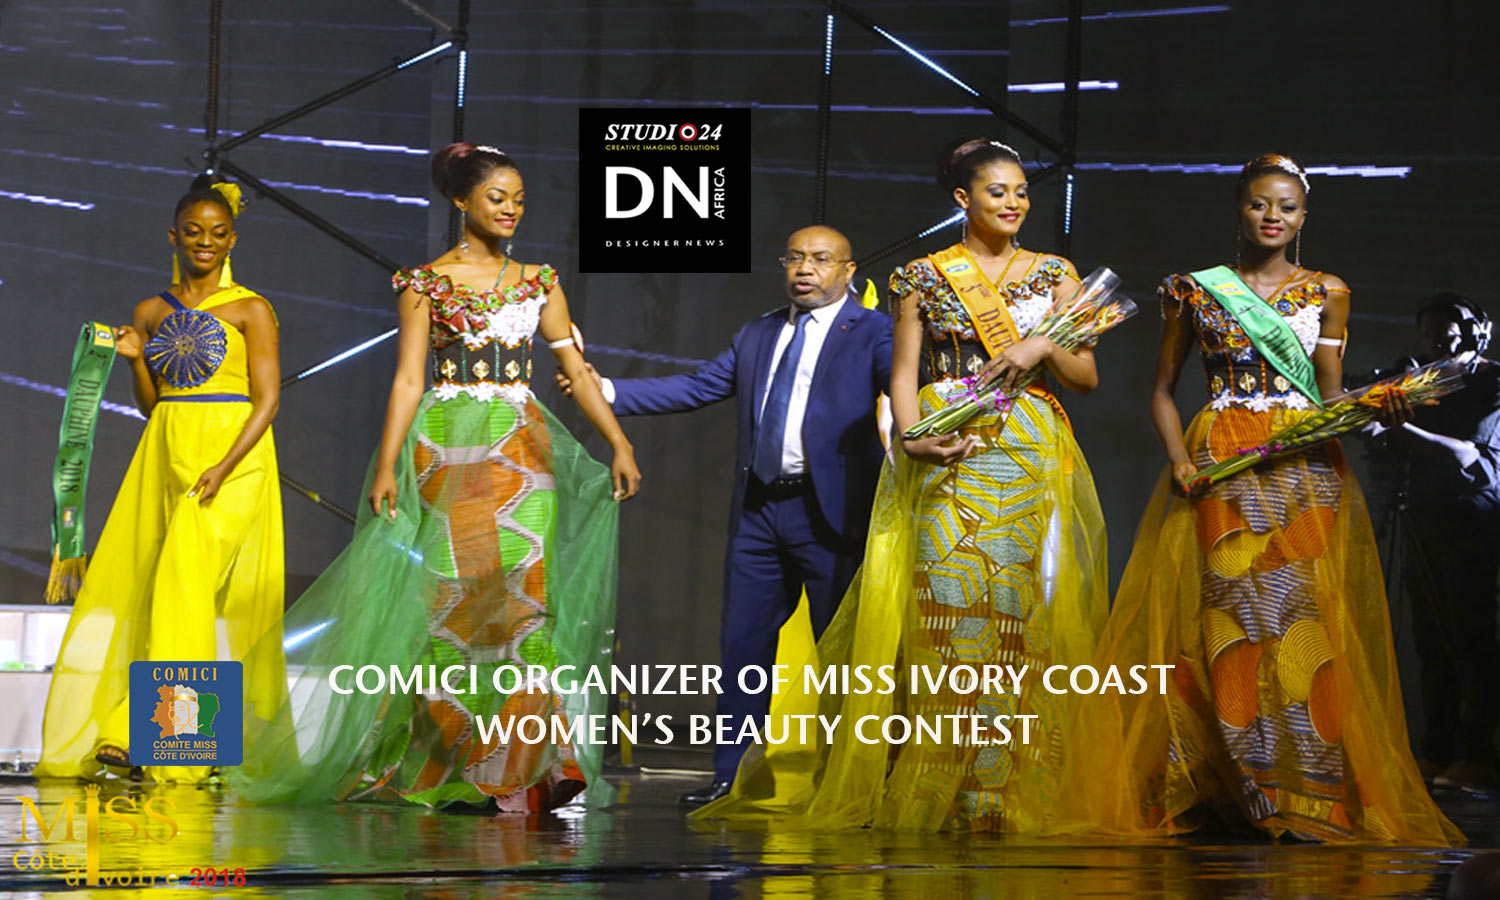 AFRICAN FASHION STYLE MAGAZINE -MISS IVORY COAST 2018 - MISS MARIE-DANIELLE SUY FATEM - COMICI VICTOR YAPOBI - DN AFRICA - STUDIO 24 NIGERIA